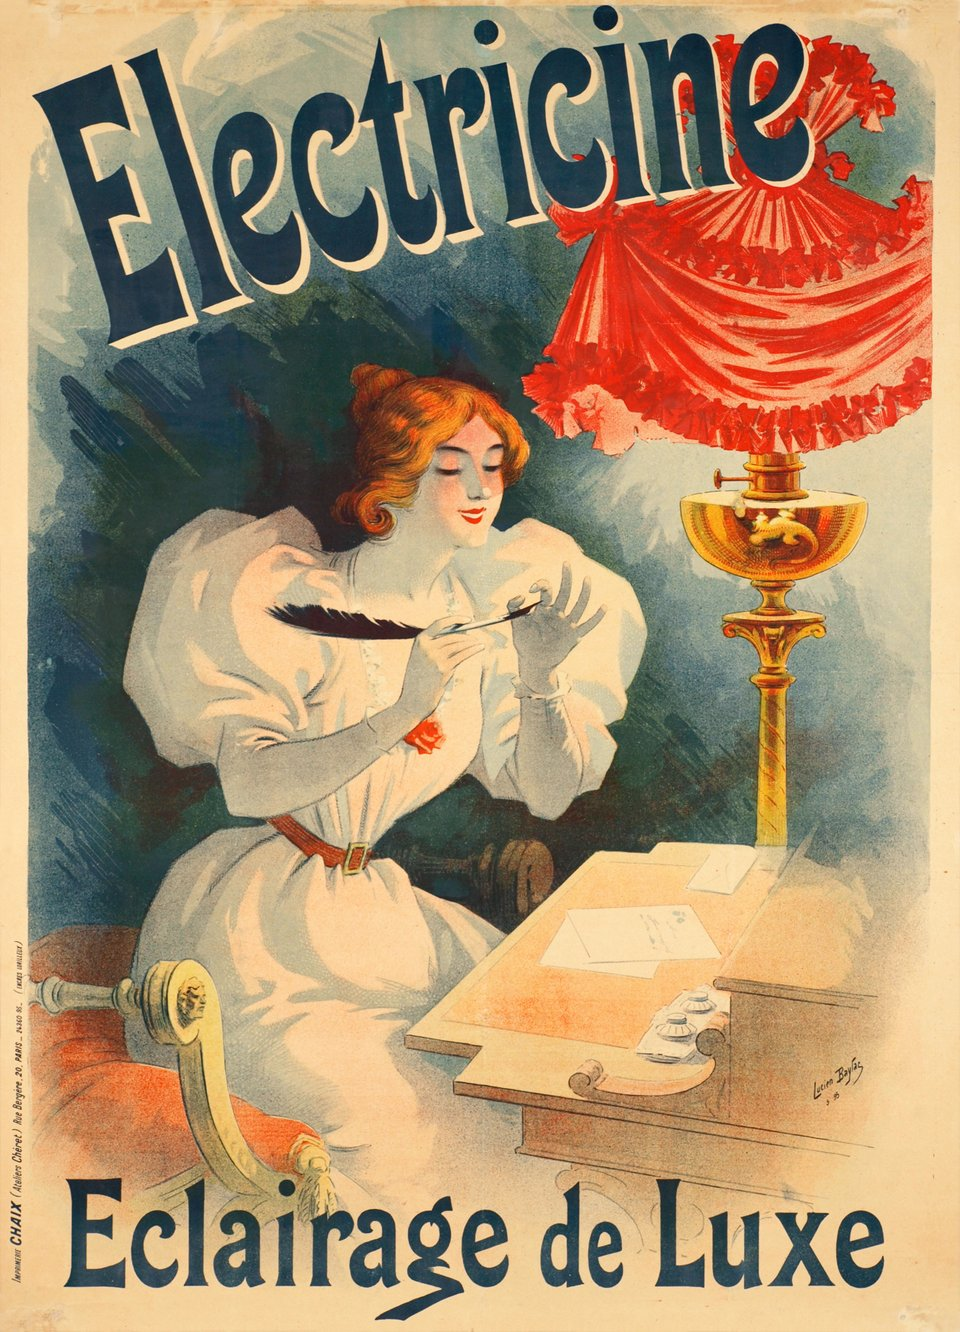 Electricine, Eclairage de luxe – Affiche ancienne – Lucien BAYLAC – 1895